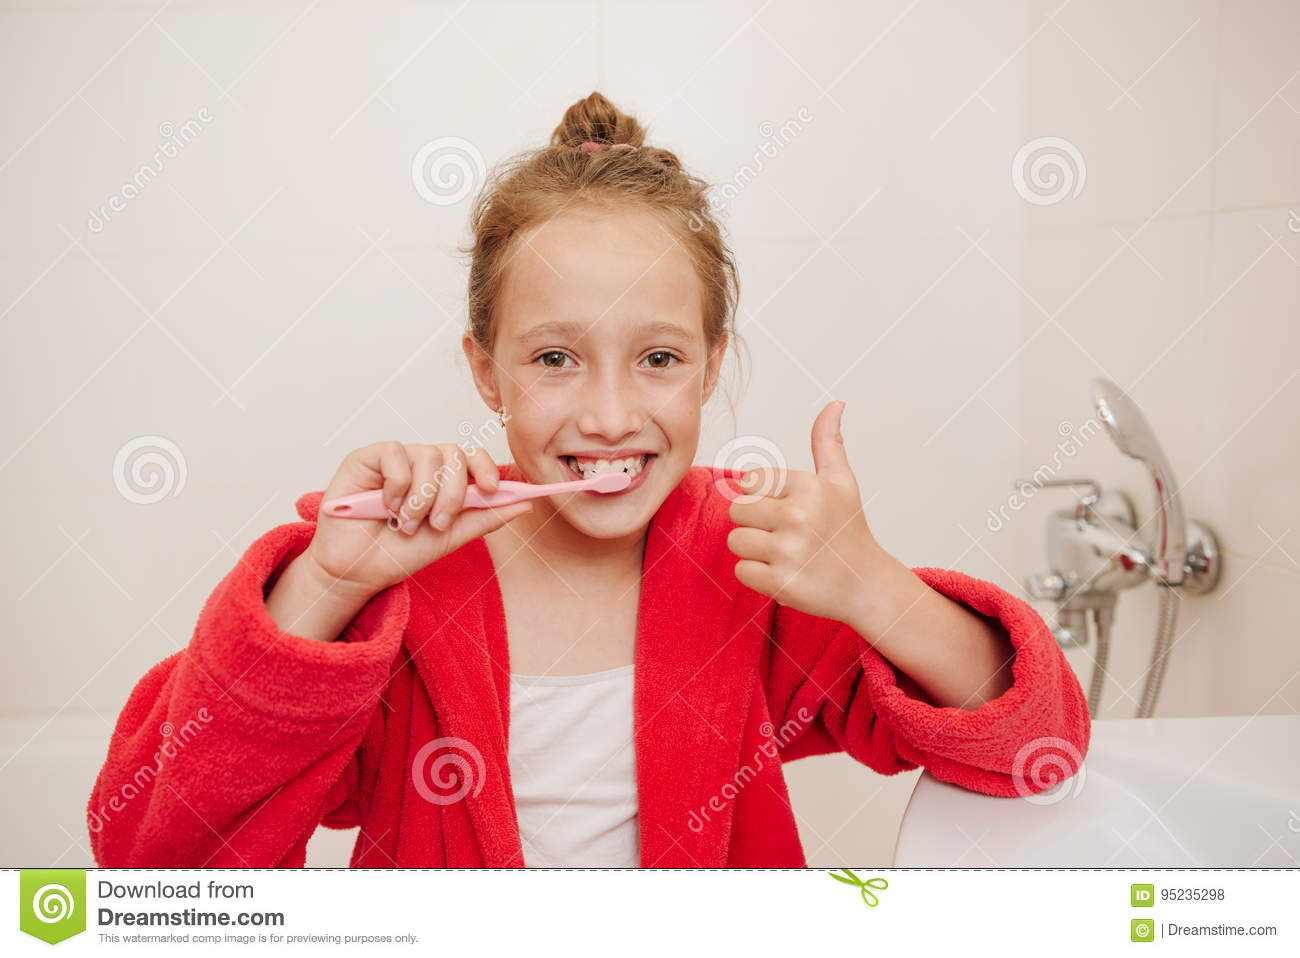 be0825eabe The girl in a dressing gown brushes teeth in a house bathroom. More similar  stock images